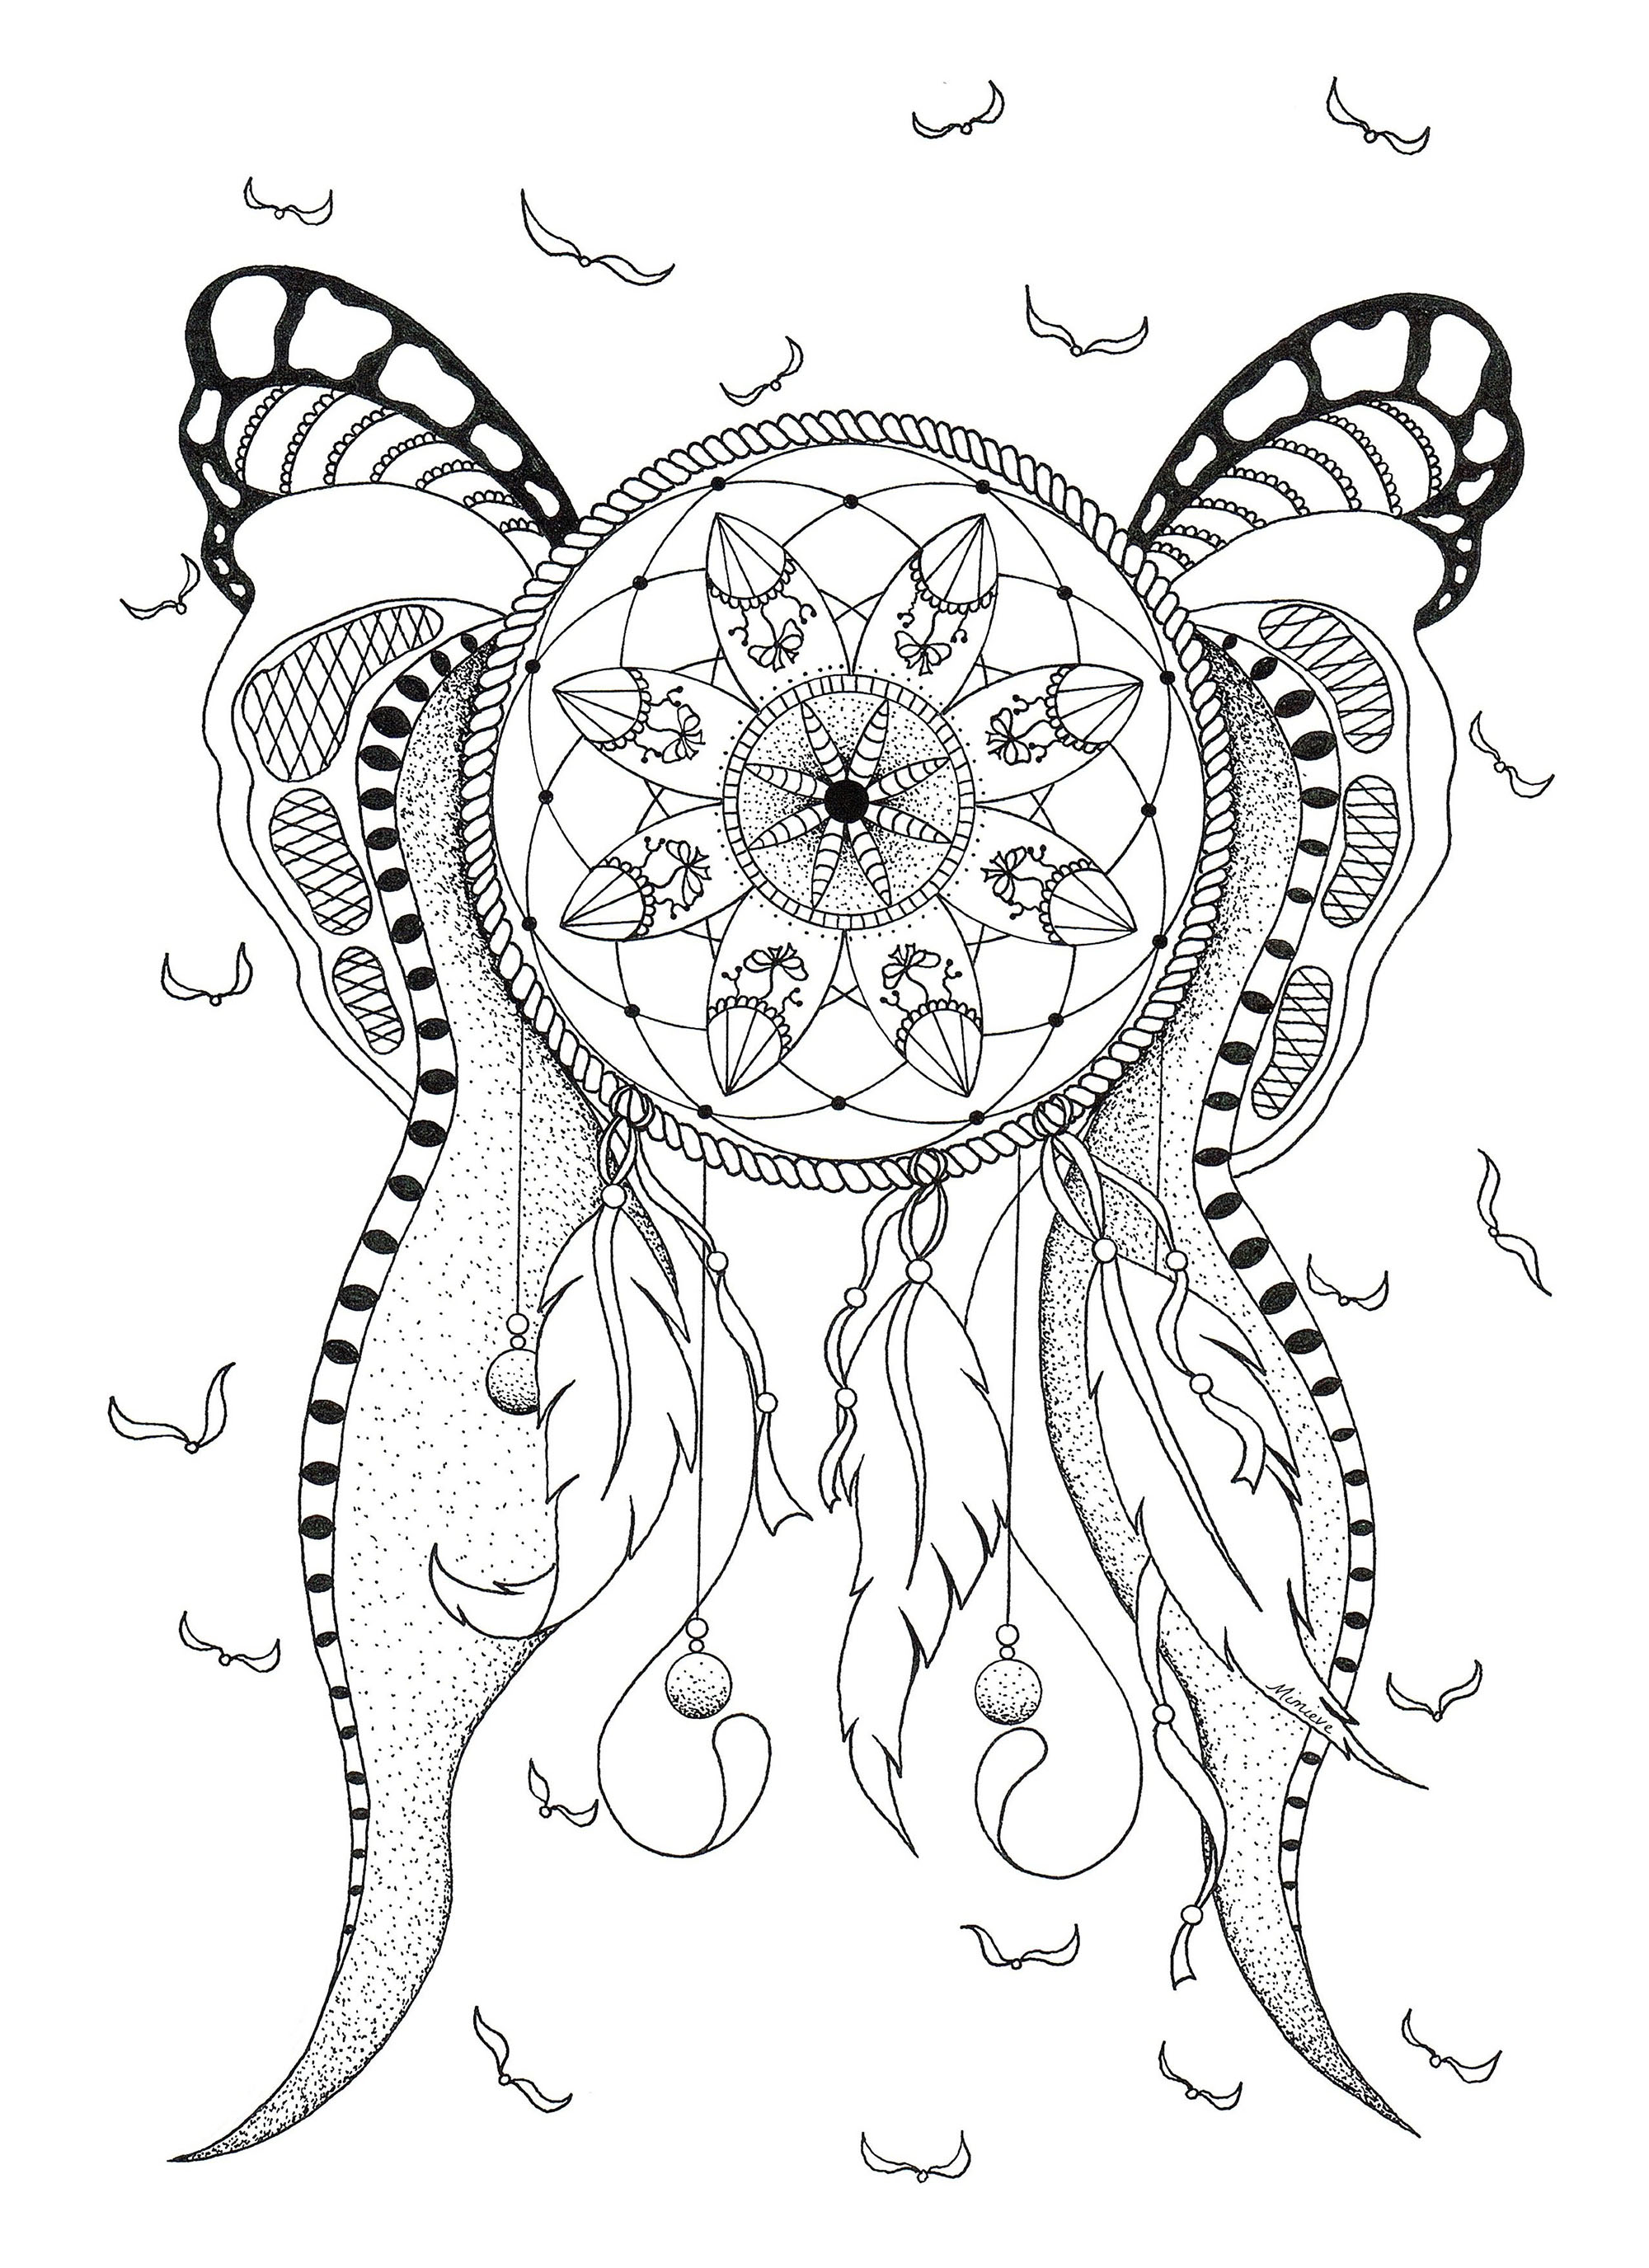 Dreamcatcher - Dreamcatchers Adult Coloring Pages